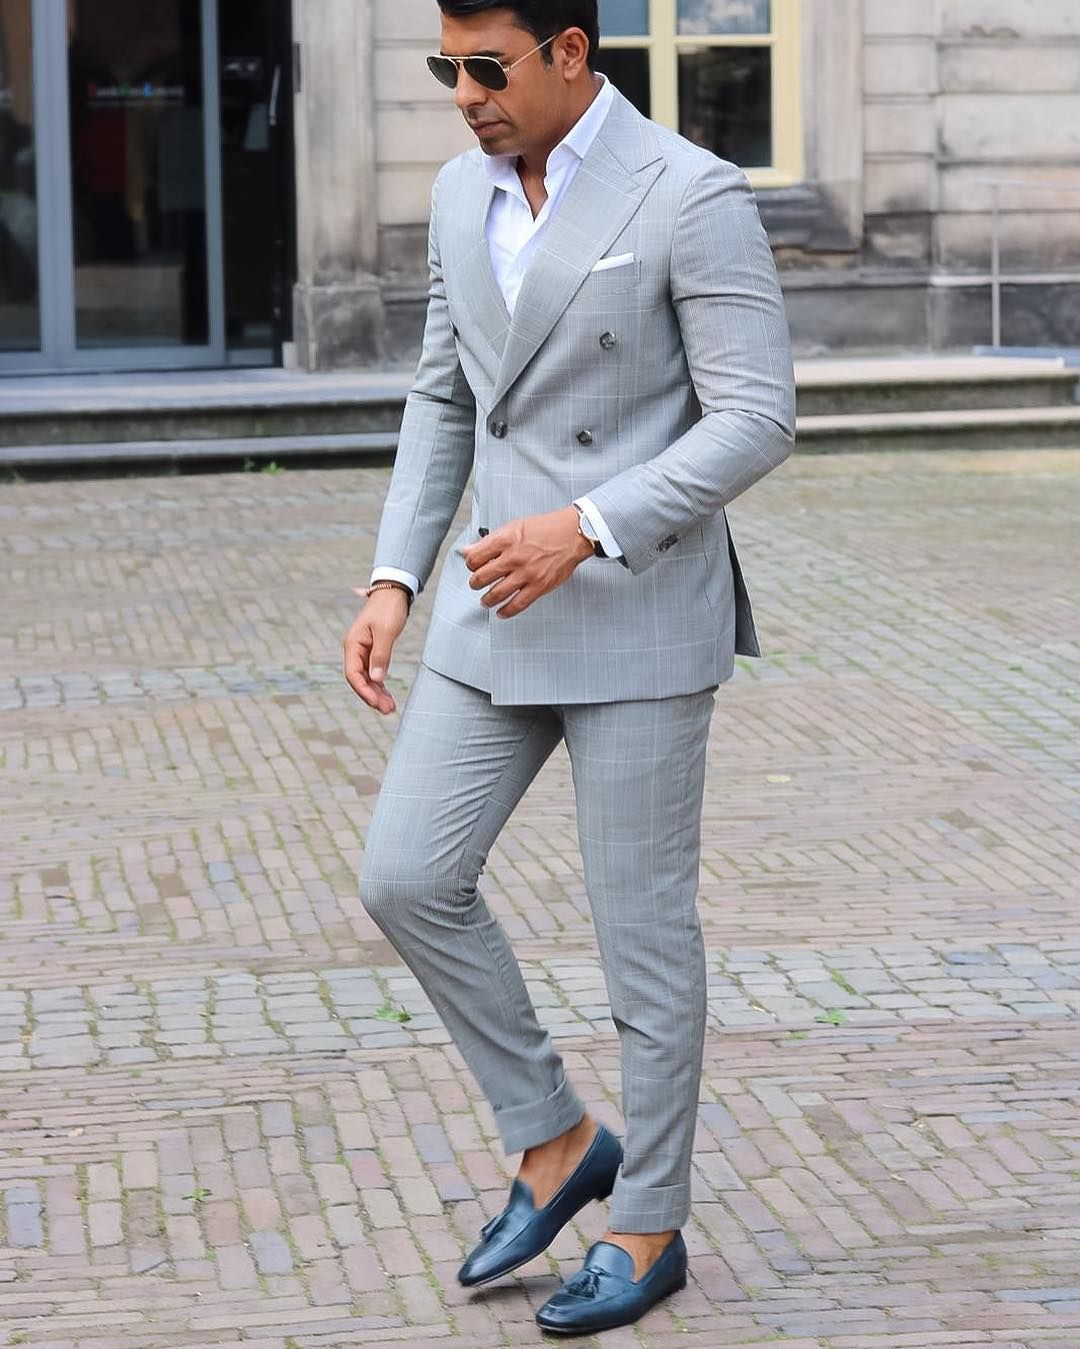 Pin by Eston Erentzen on mens fashion in 2019